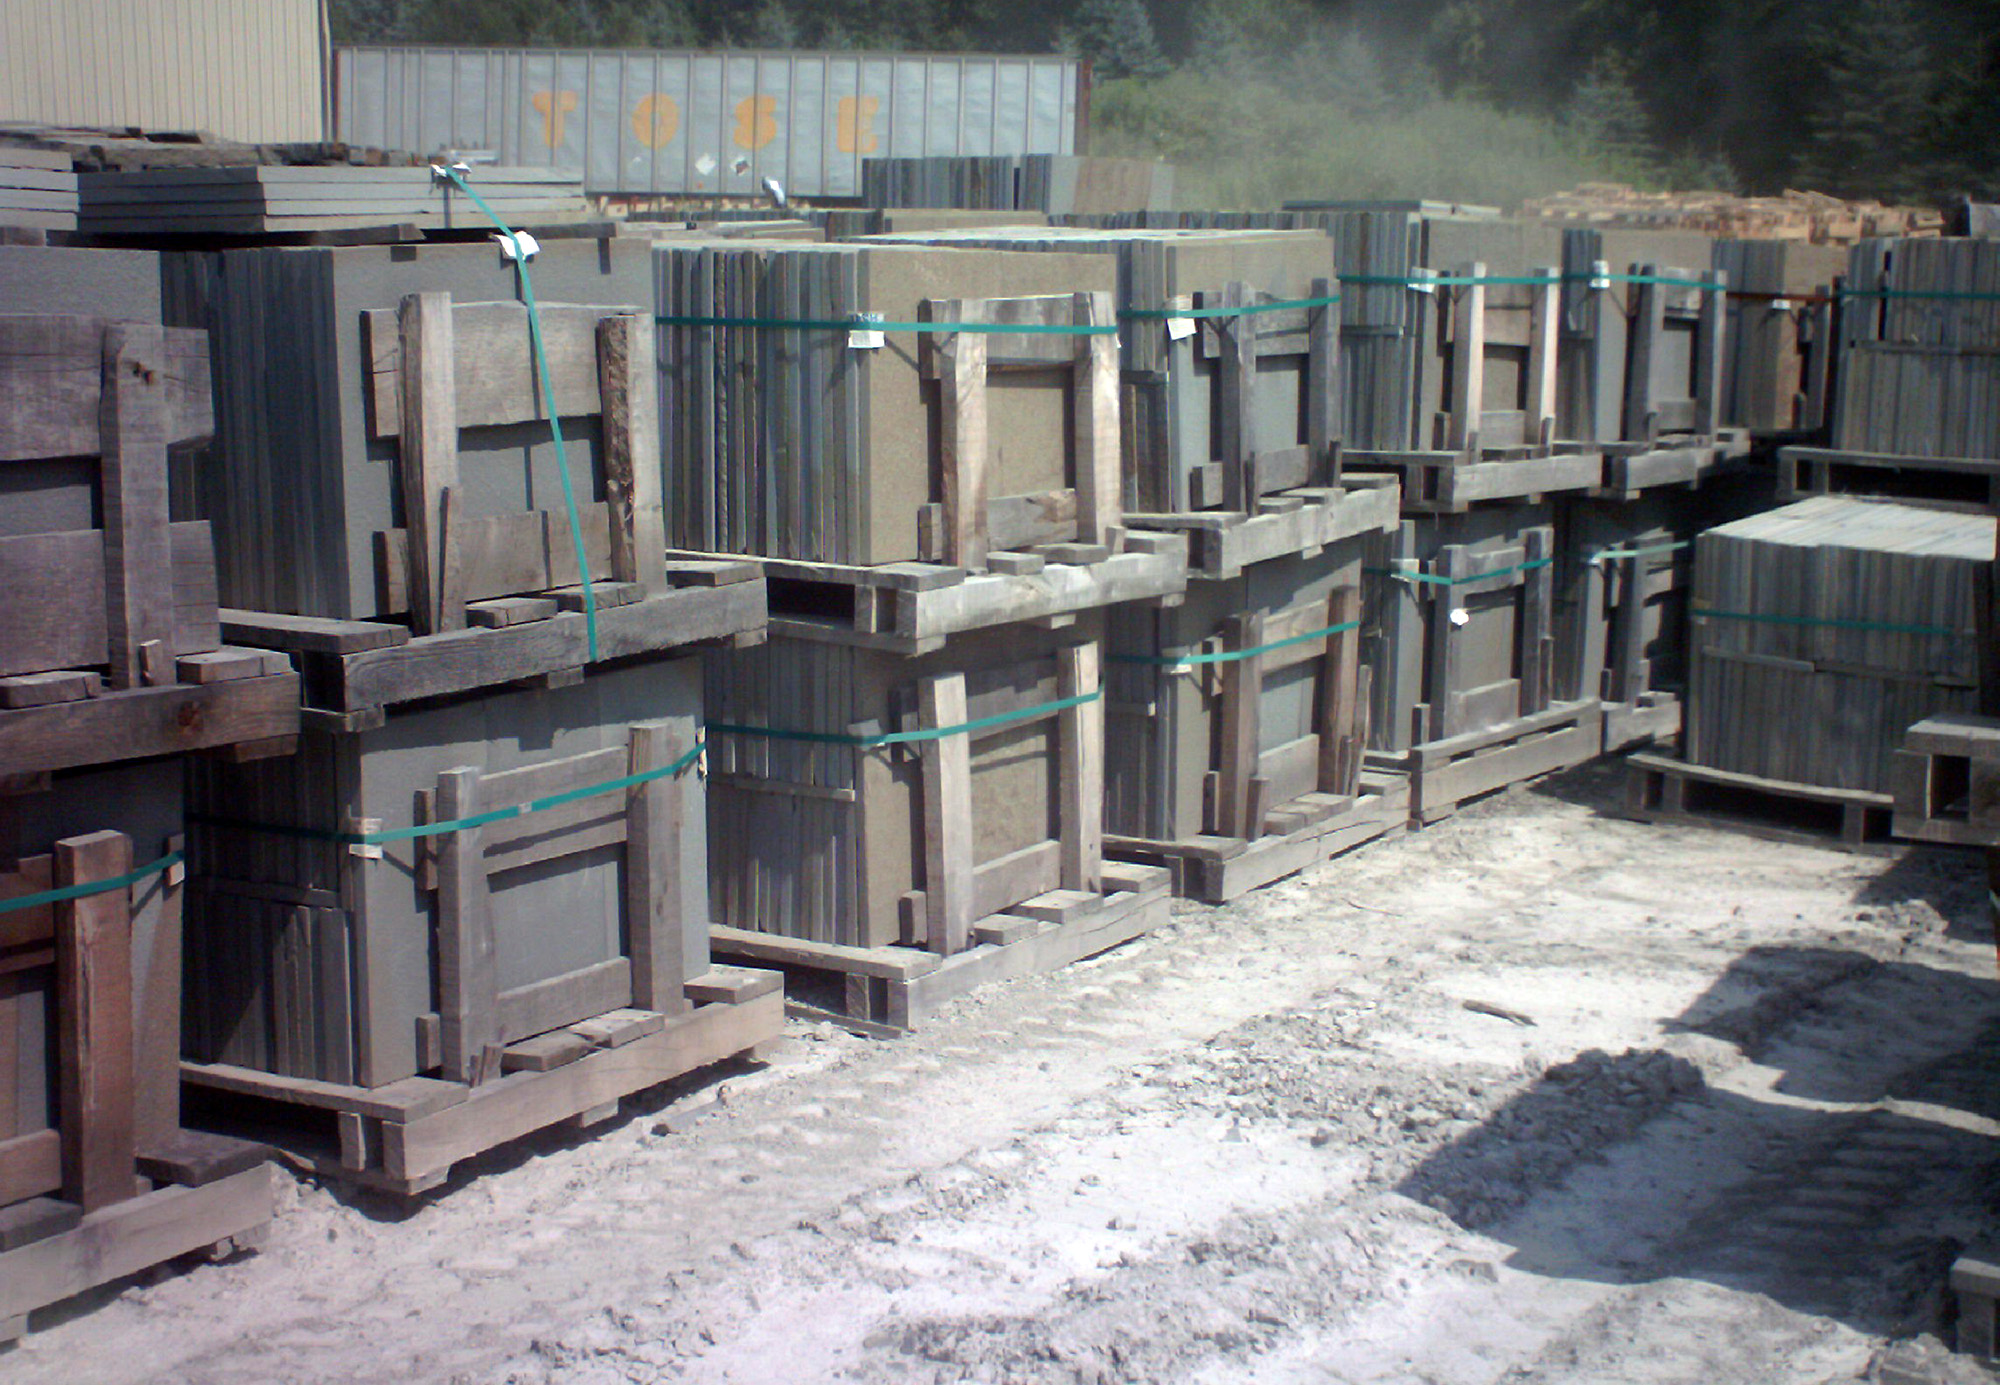 Palettes of stone cut into a variety of rectangular and square shapes and sizes.